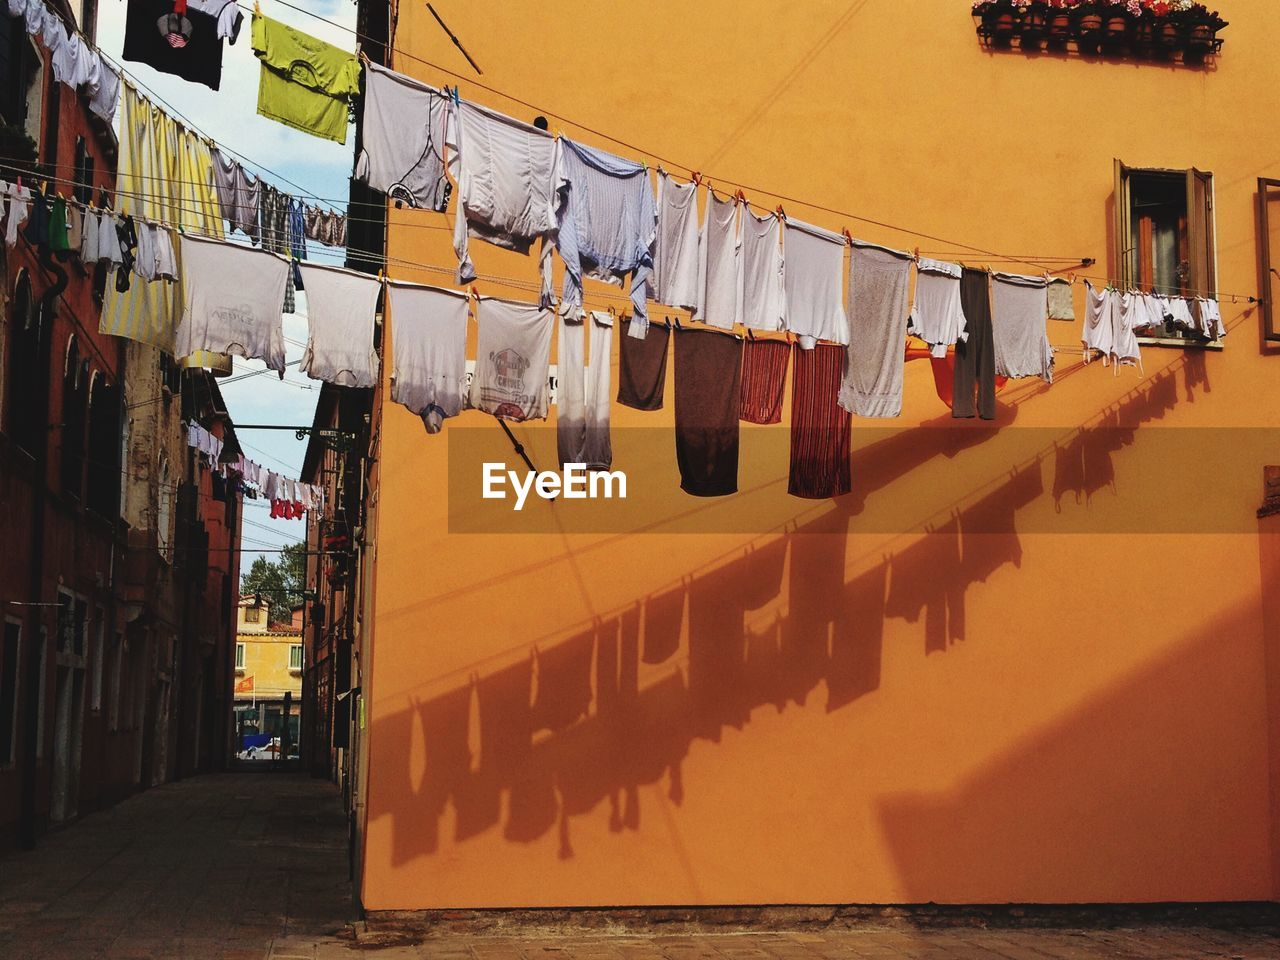 Low Angle View Of Clothes Drying On Clothesline Against Buildings